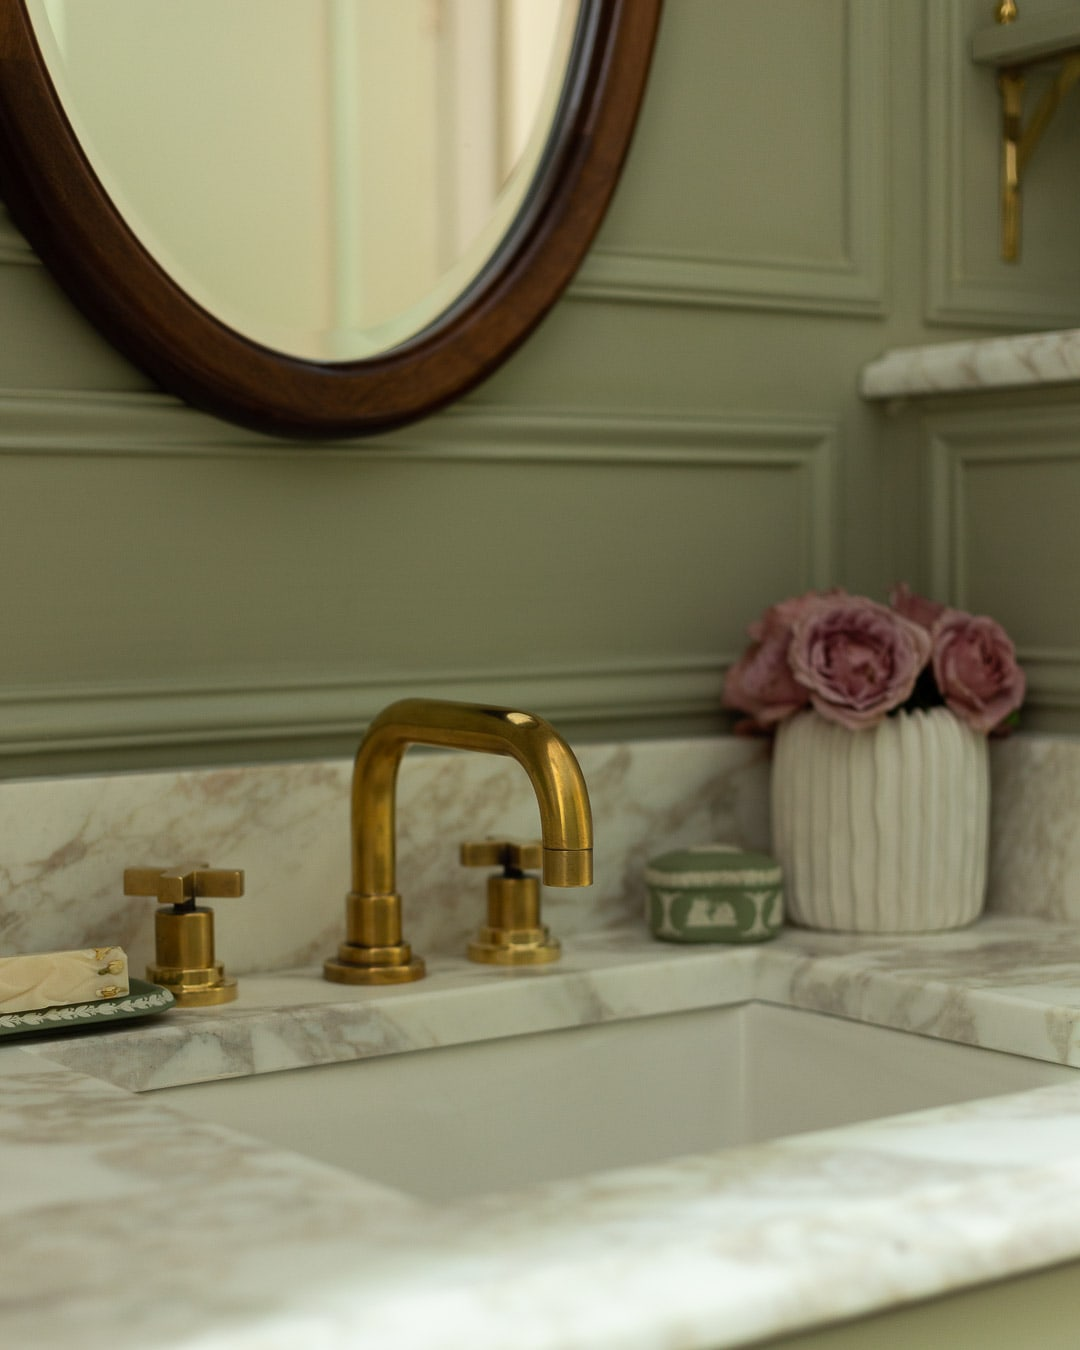 Rohl Faucet A Glass Of Bovino, Unlacquered Brass Bathroom Faucet